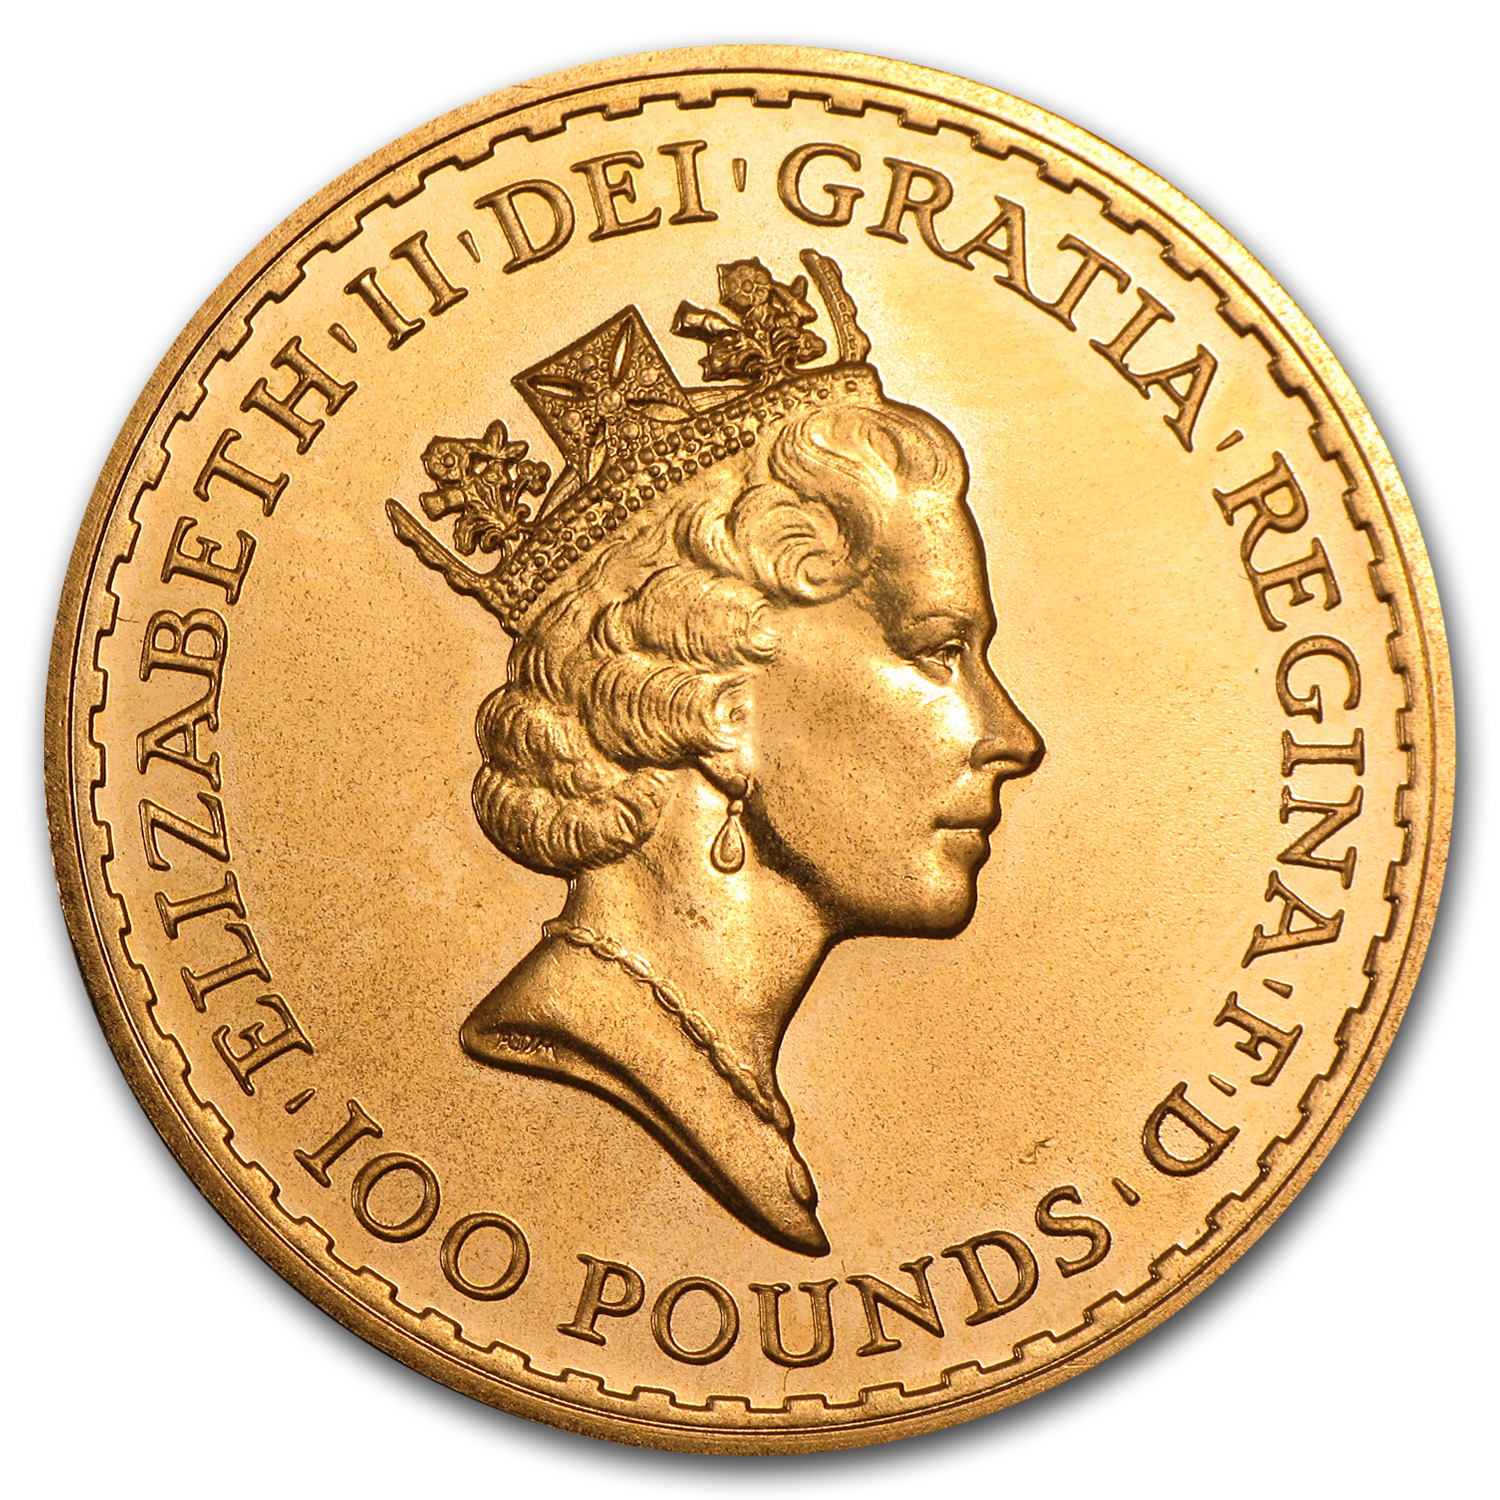 1 oz Gold Britannia - Proof - Random Year - Abrasions